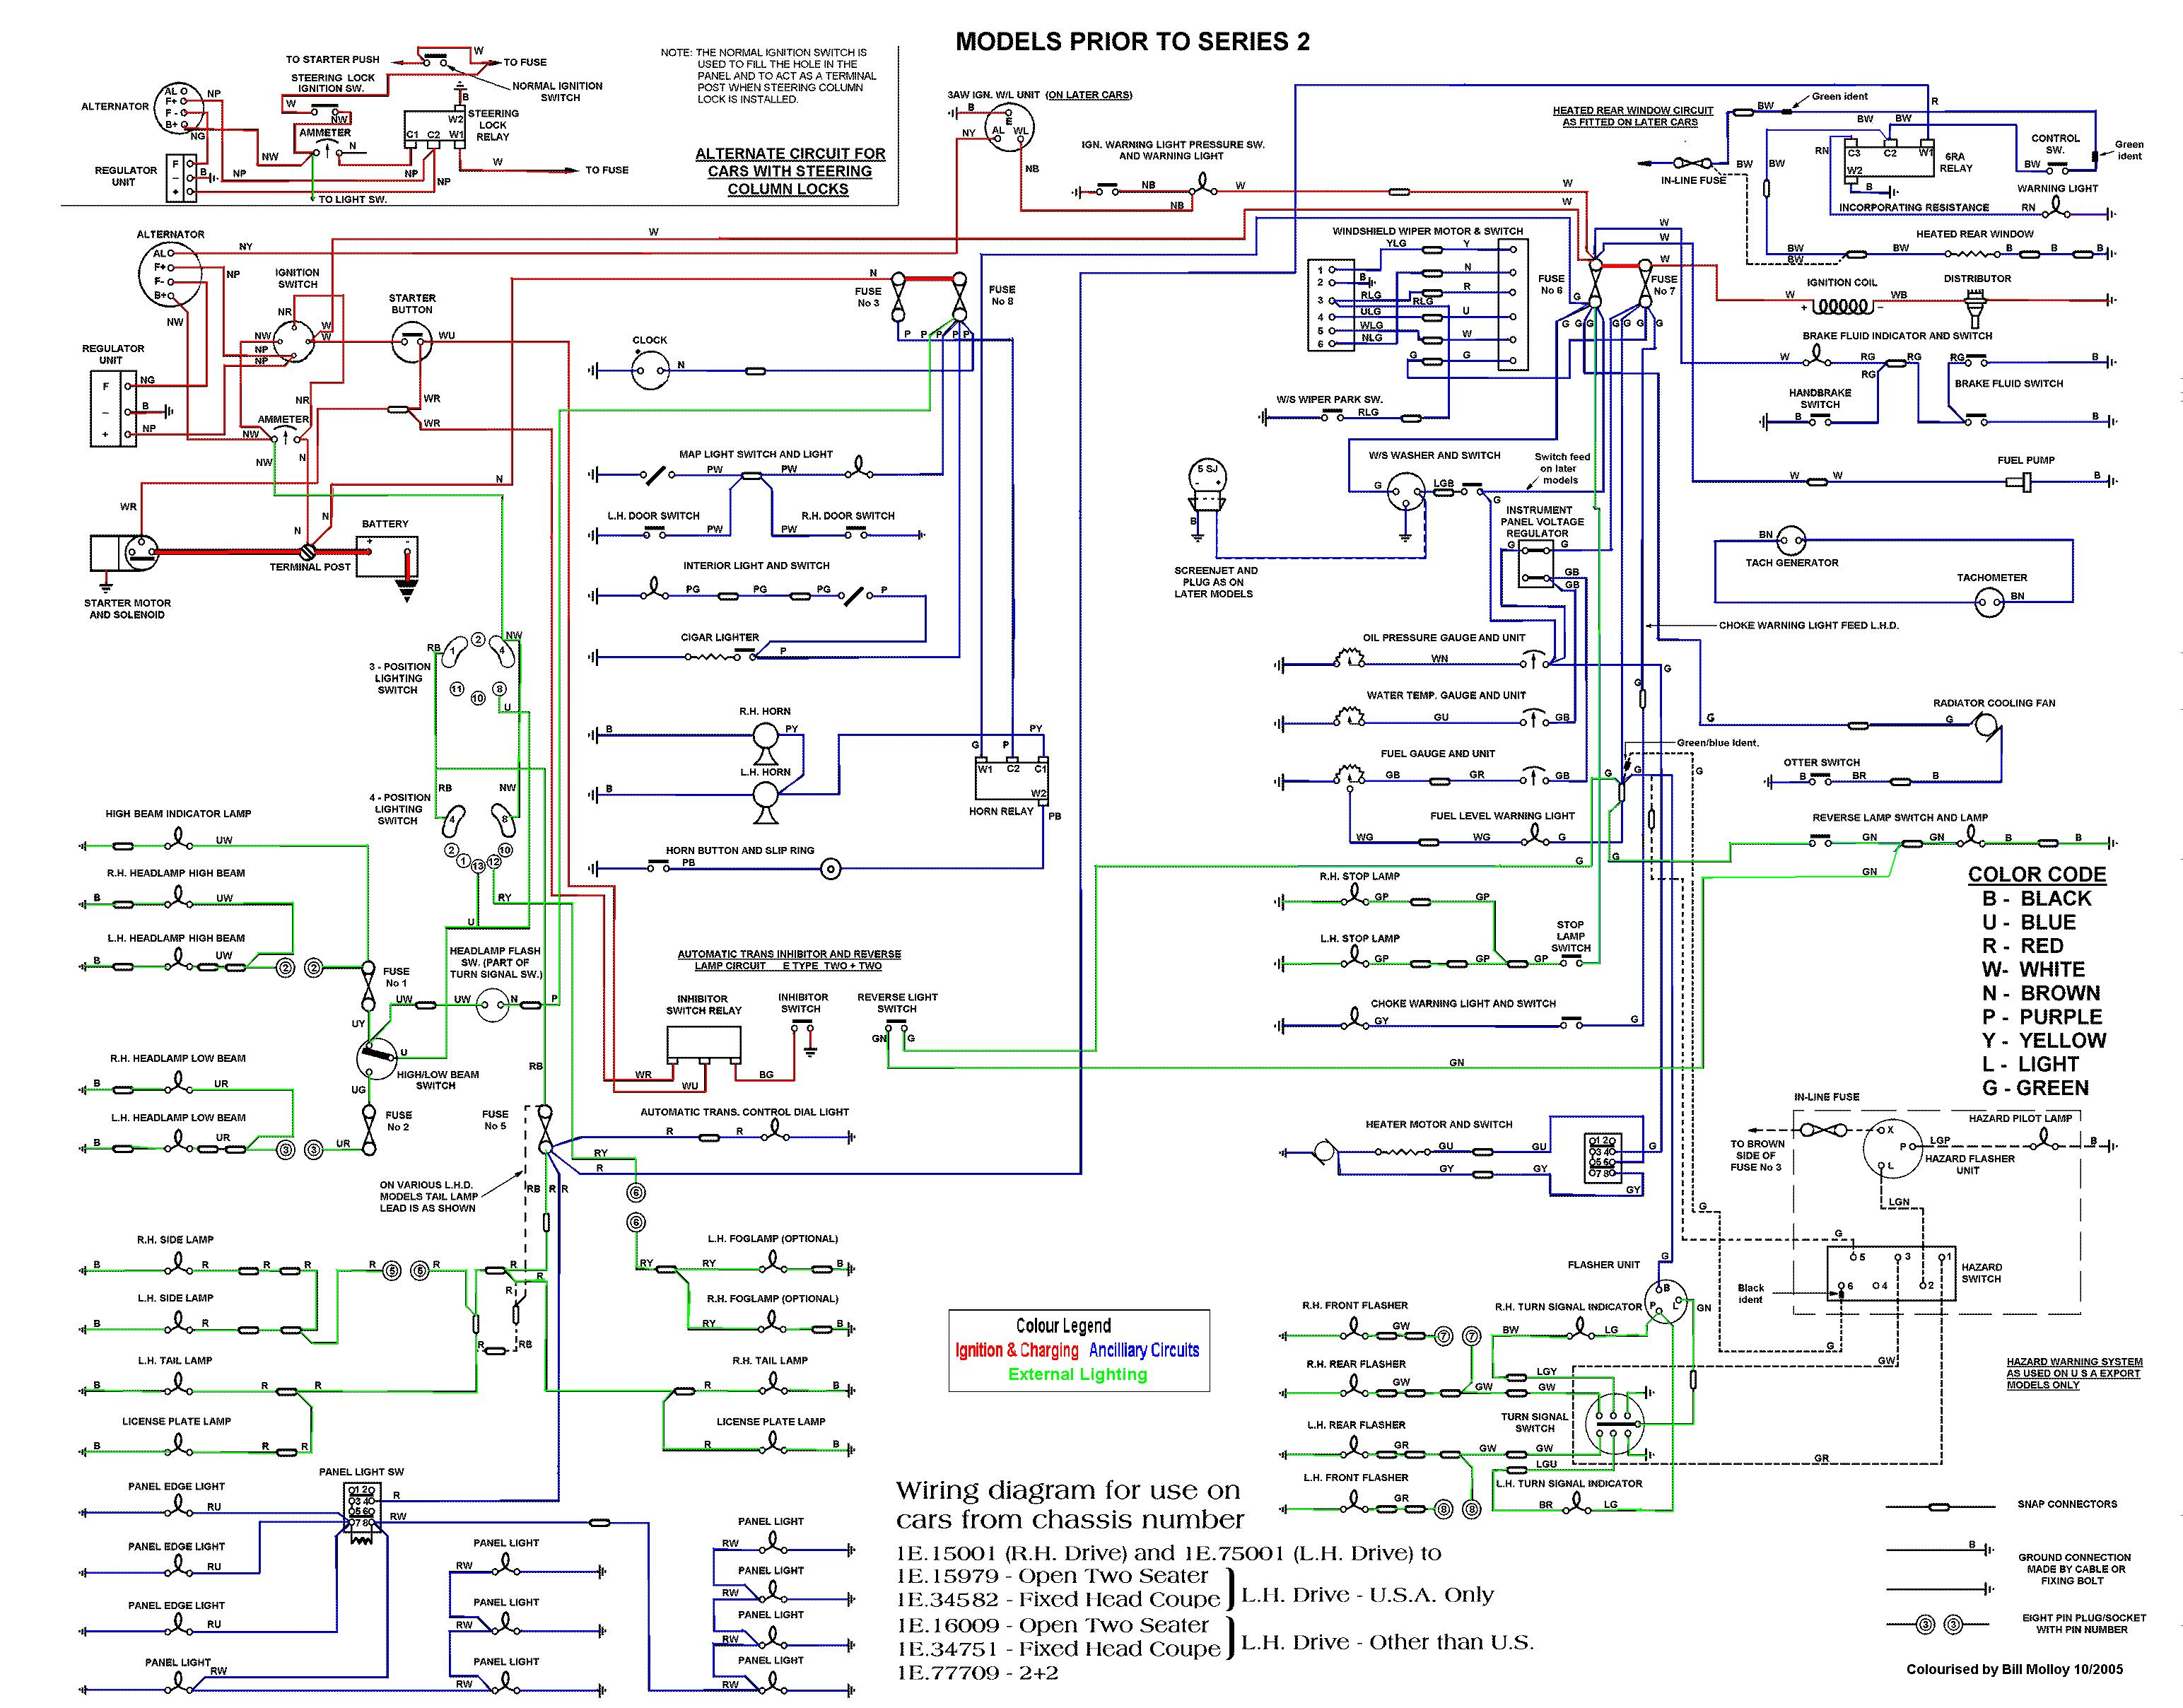 2003 jaguar s type wiring diagram zAKOGhQ jaguar wiring diagram fender player jaguar hh wiring schematics jaguar xjs wiring diagram pdf at gsmx.co